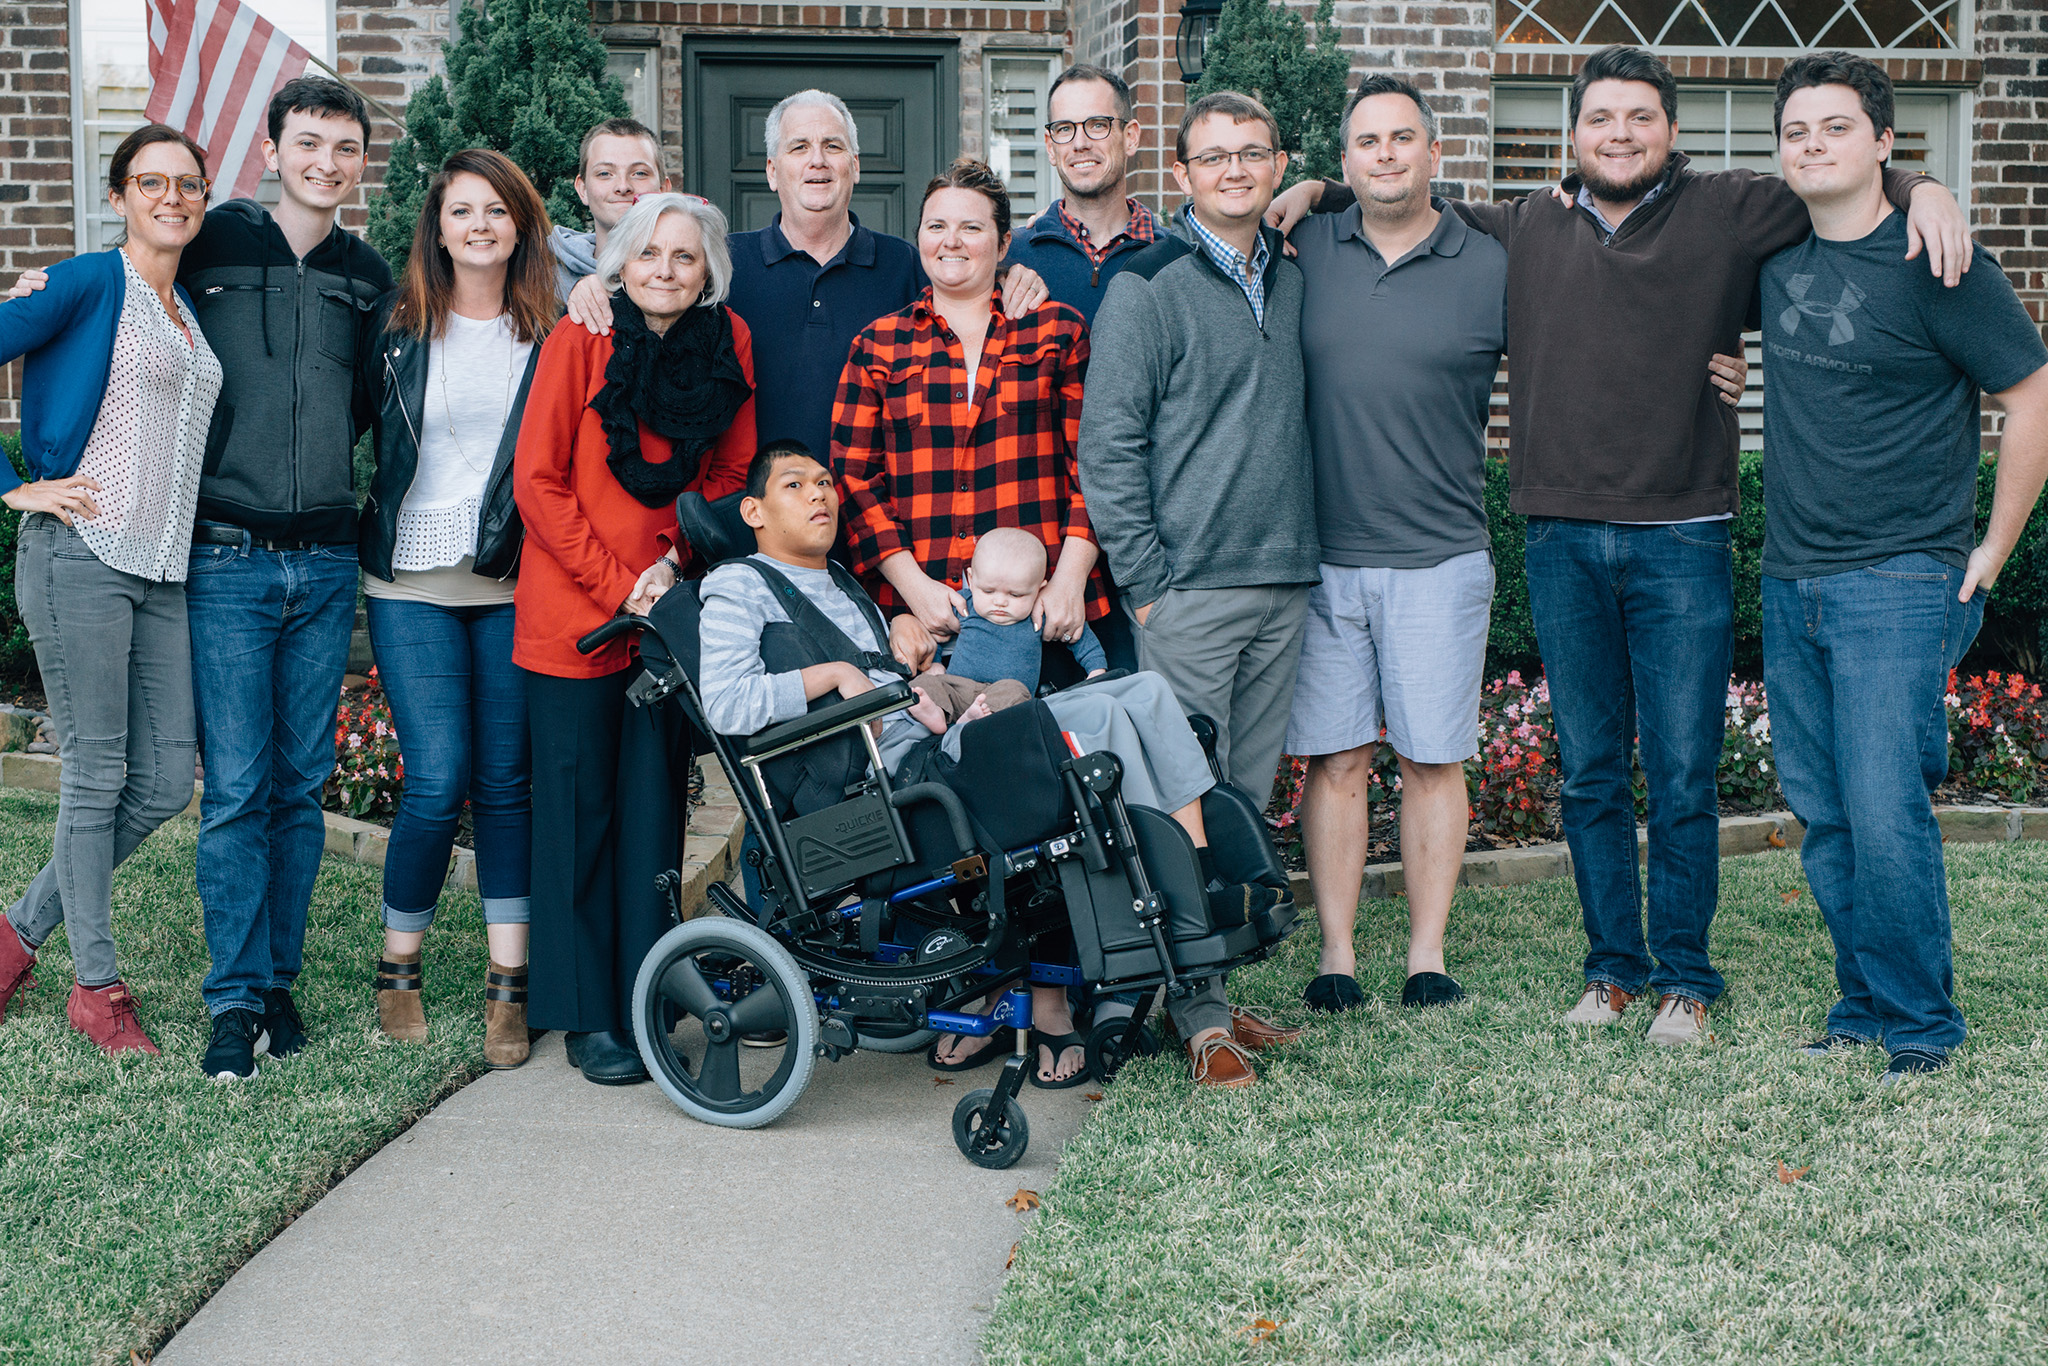 November 25: Thanksgiving Friday tripod shot of the Blinn crew this year. Small-ish group for us. Super-sized family much?